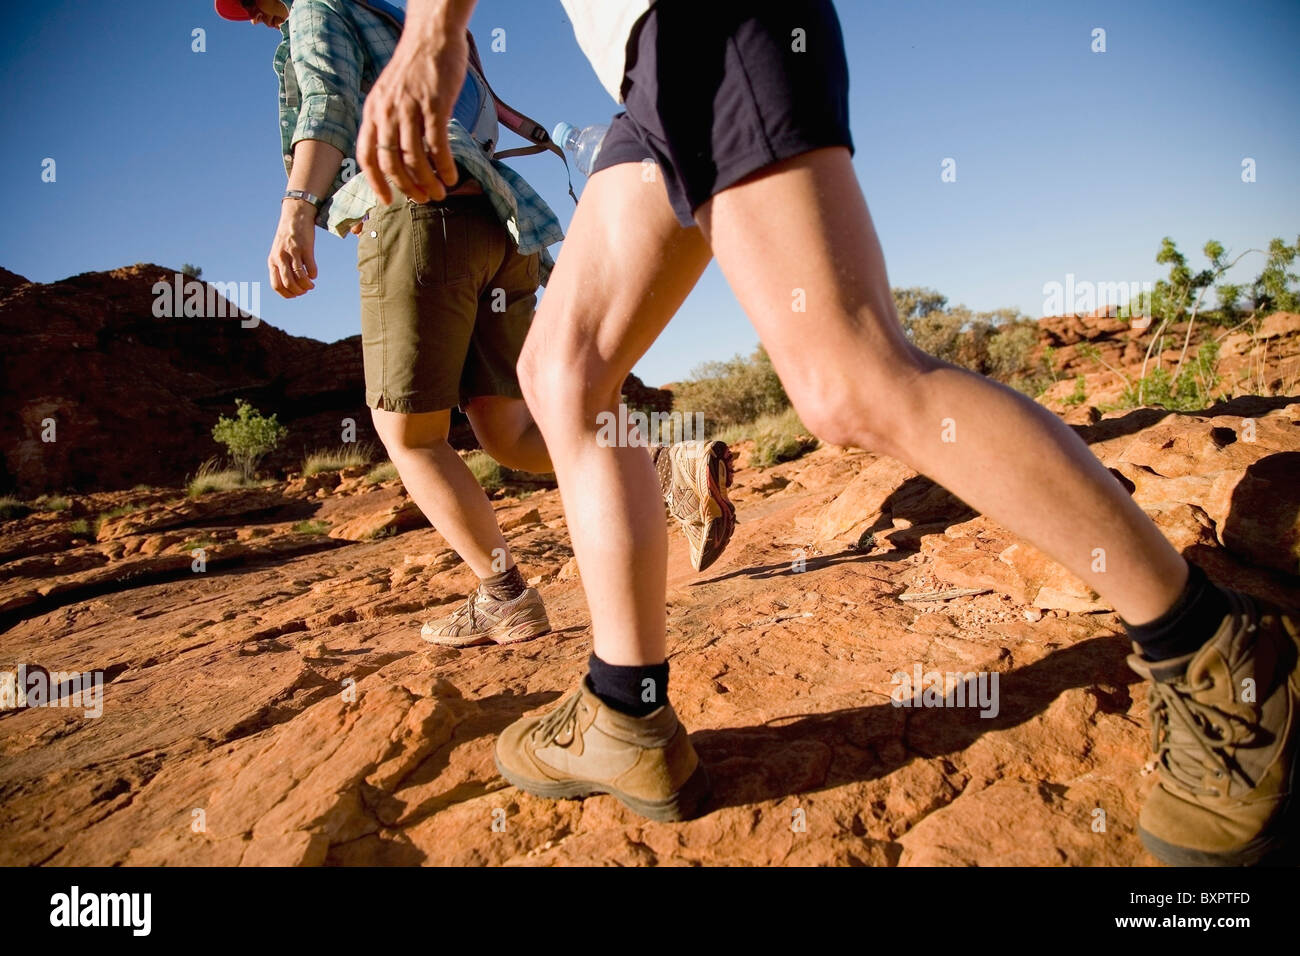 Couple Walking in Kings Canyon, Low Angle View Photo Stock